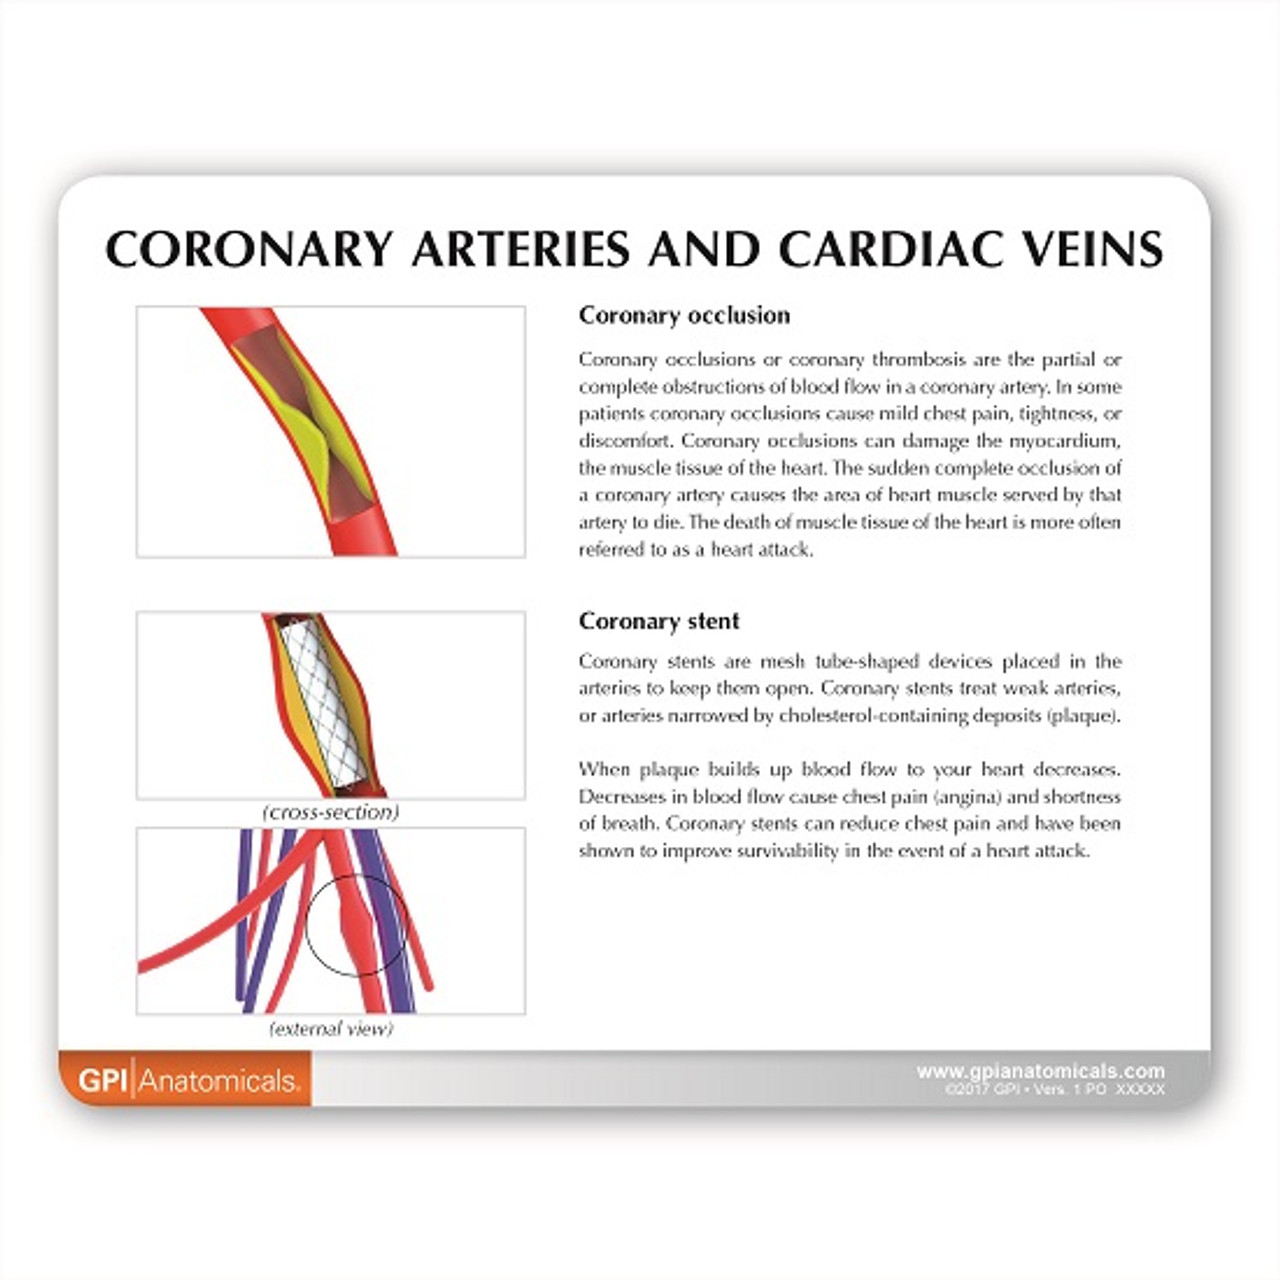 Coronary  Artery/ Cardiac Vein Description Card